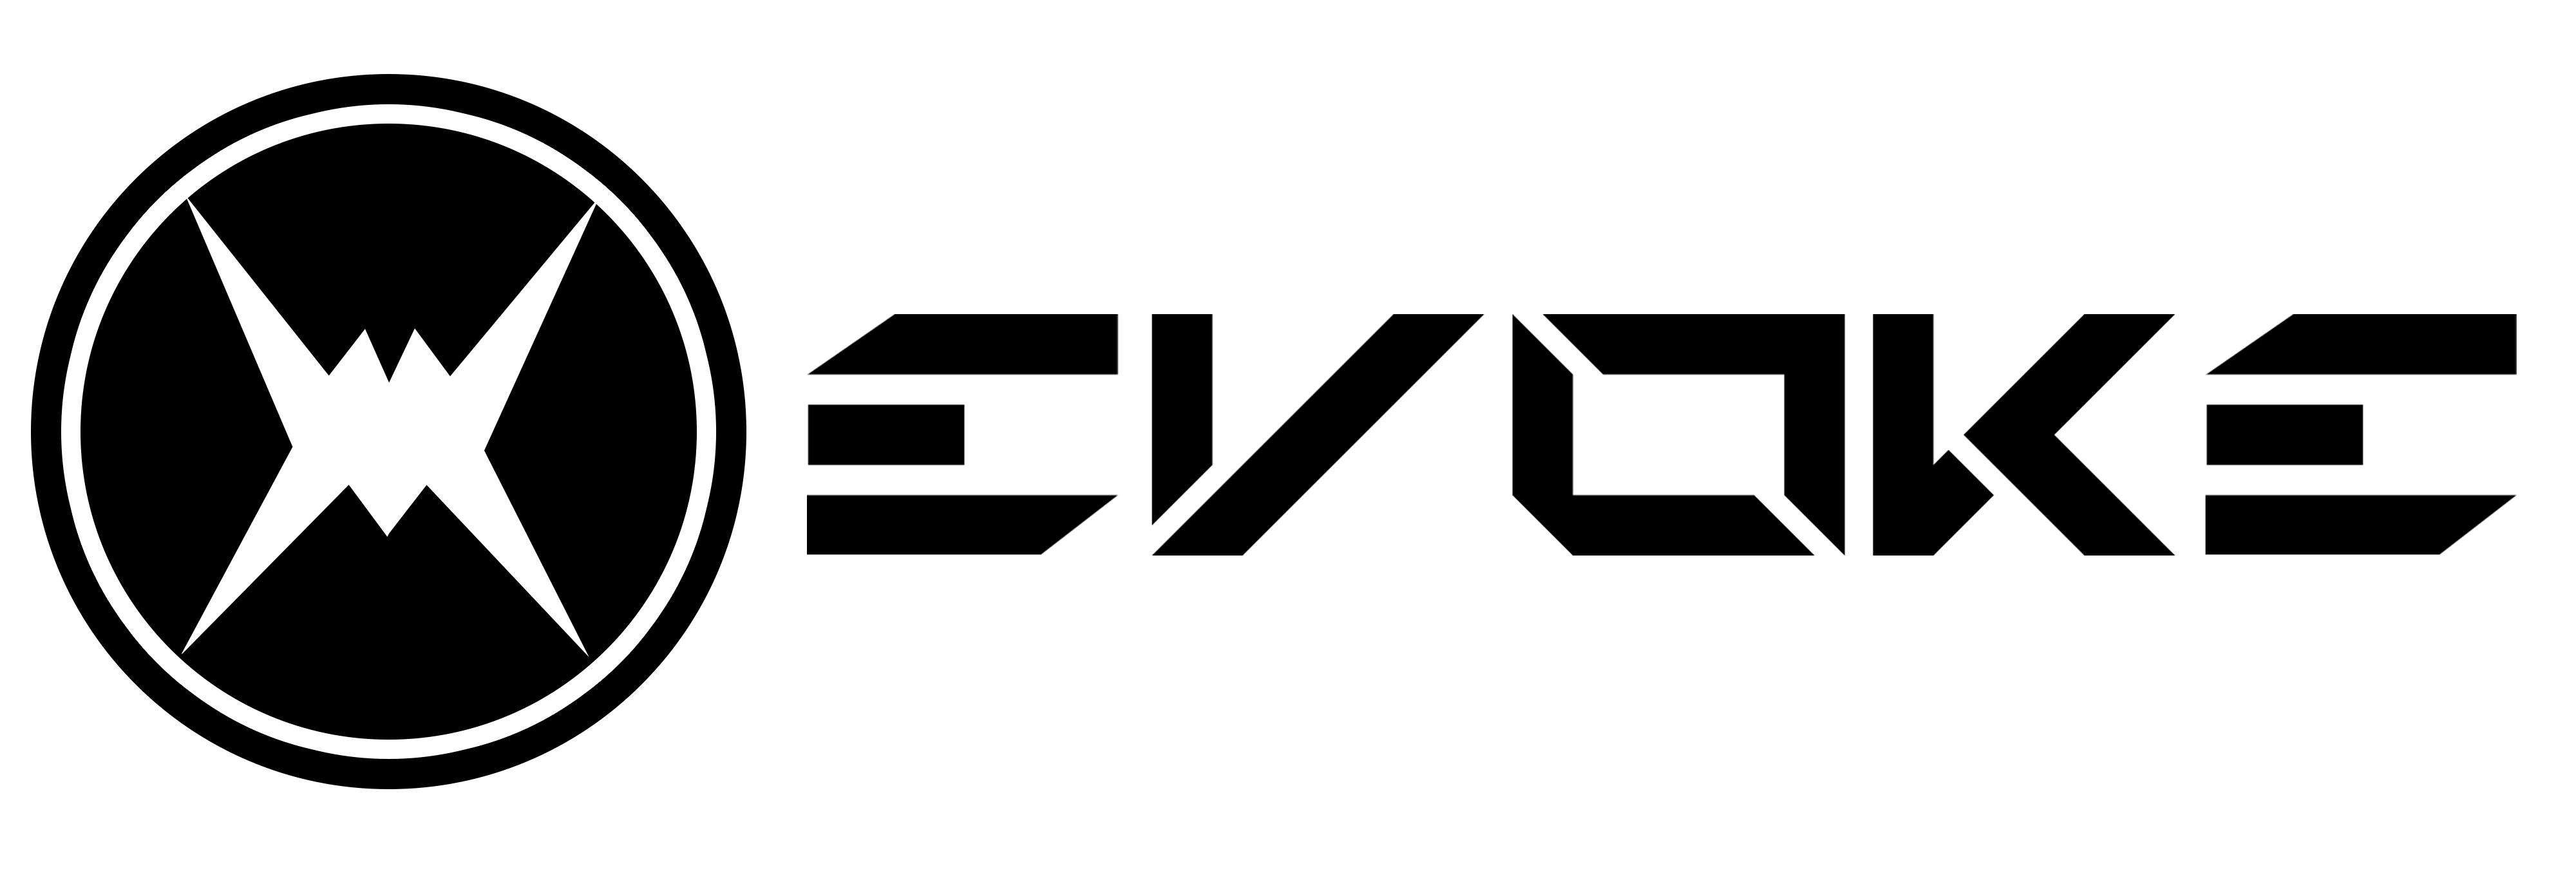 Evoke Electric logo